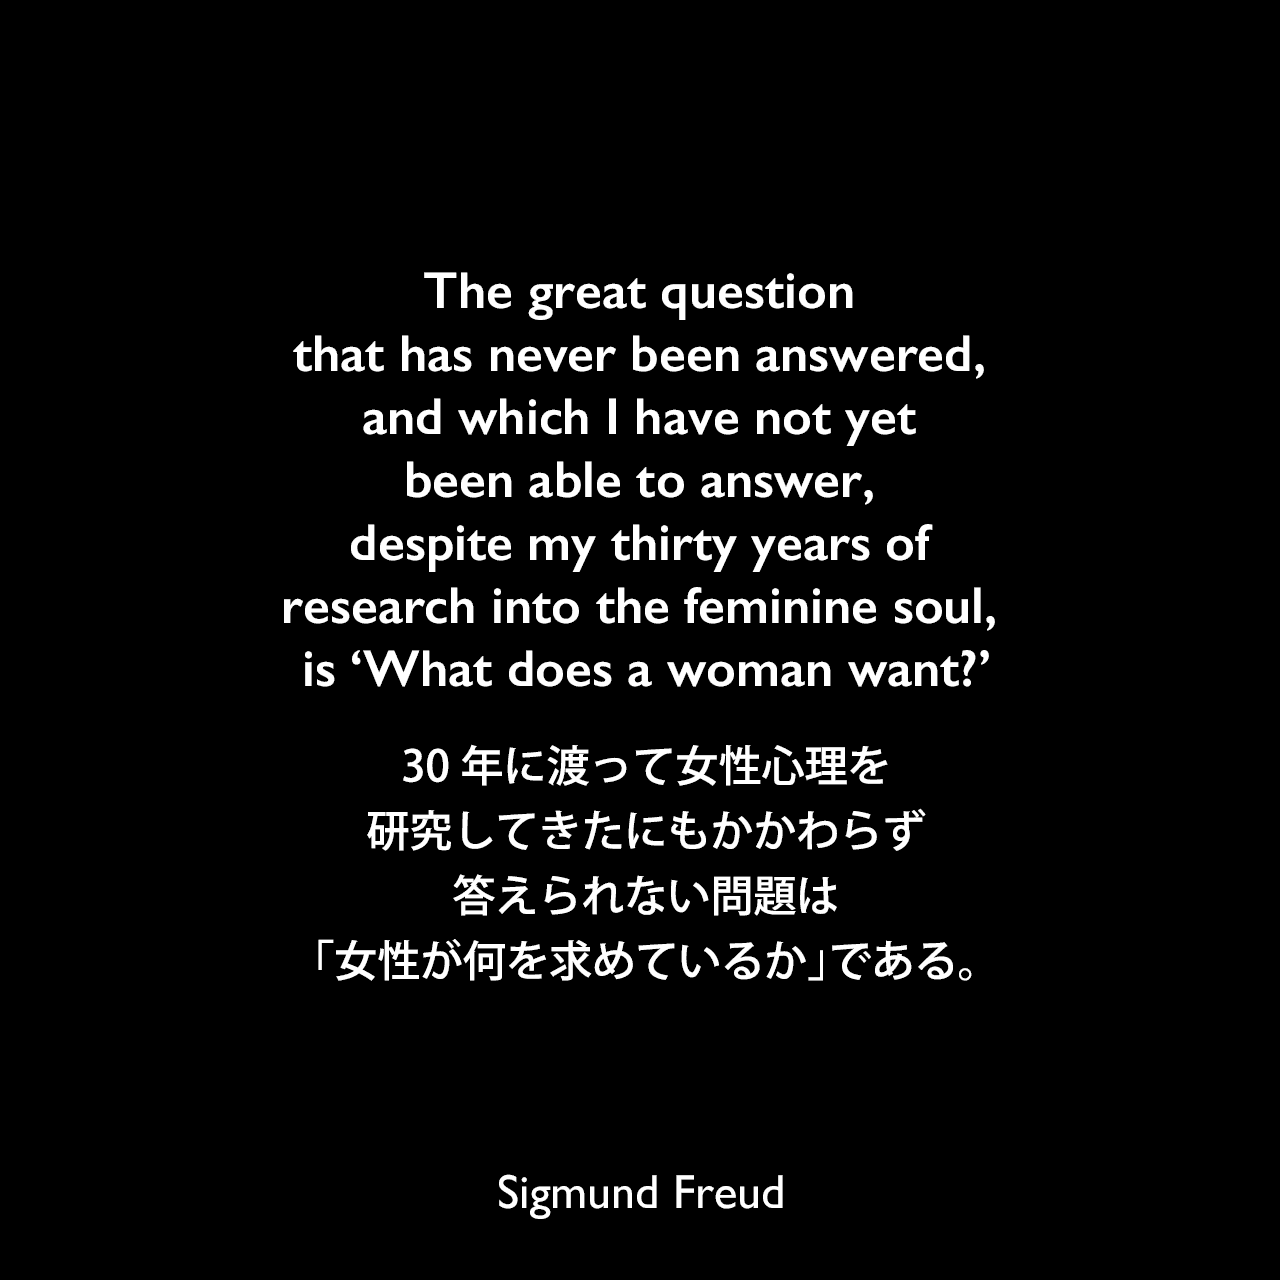 The great question that has never been answered, and which I have not yet been able to answer, despite my thirty years of research into the feminine soul, is 'What does a woman want?'30年に渡って女性心理を研究してきたにもかかわらず答えられない問題は「女性が何を求めているか」である。Sigmund Freud